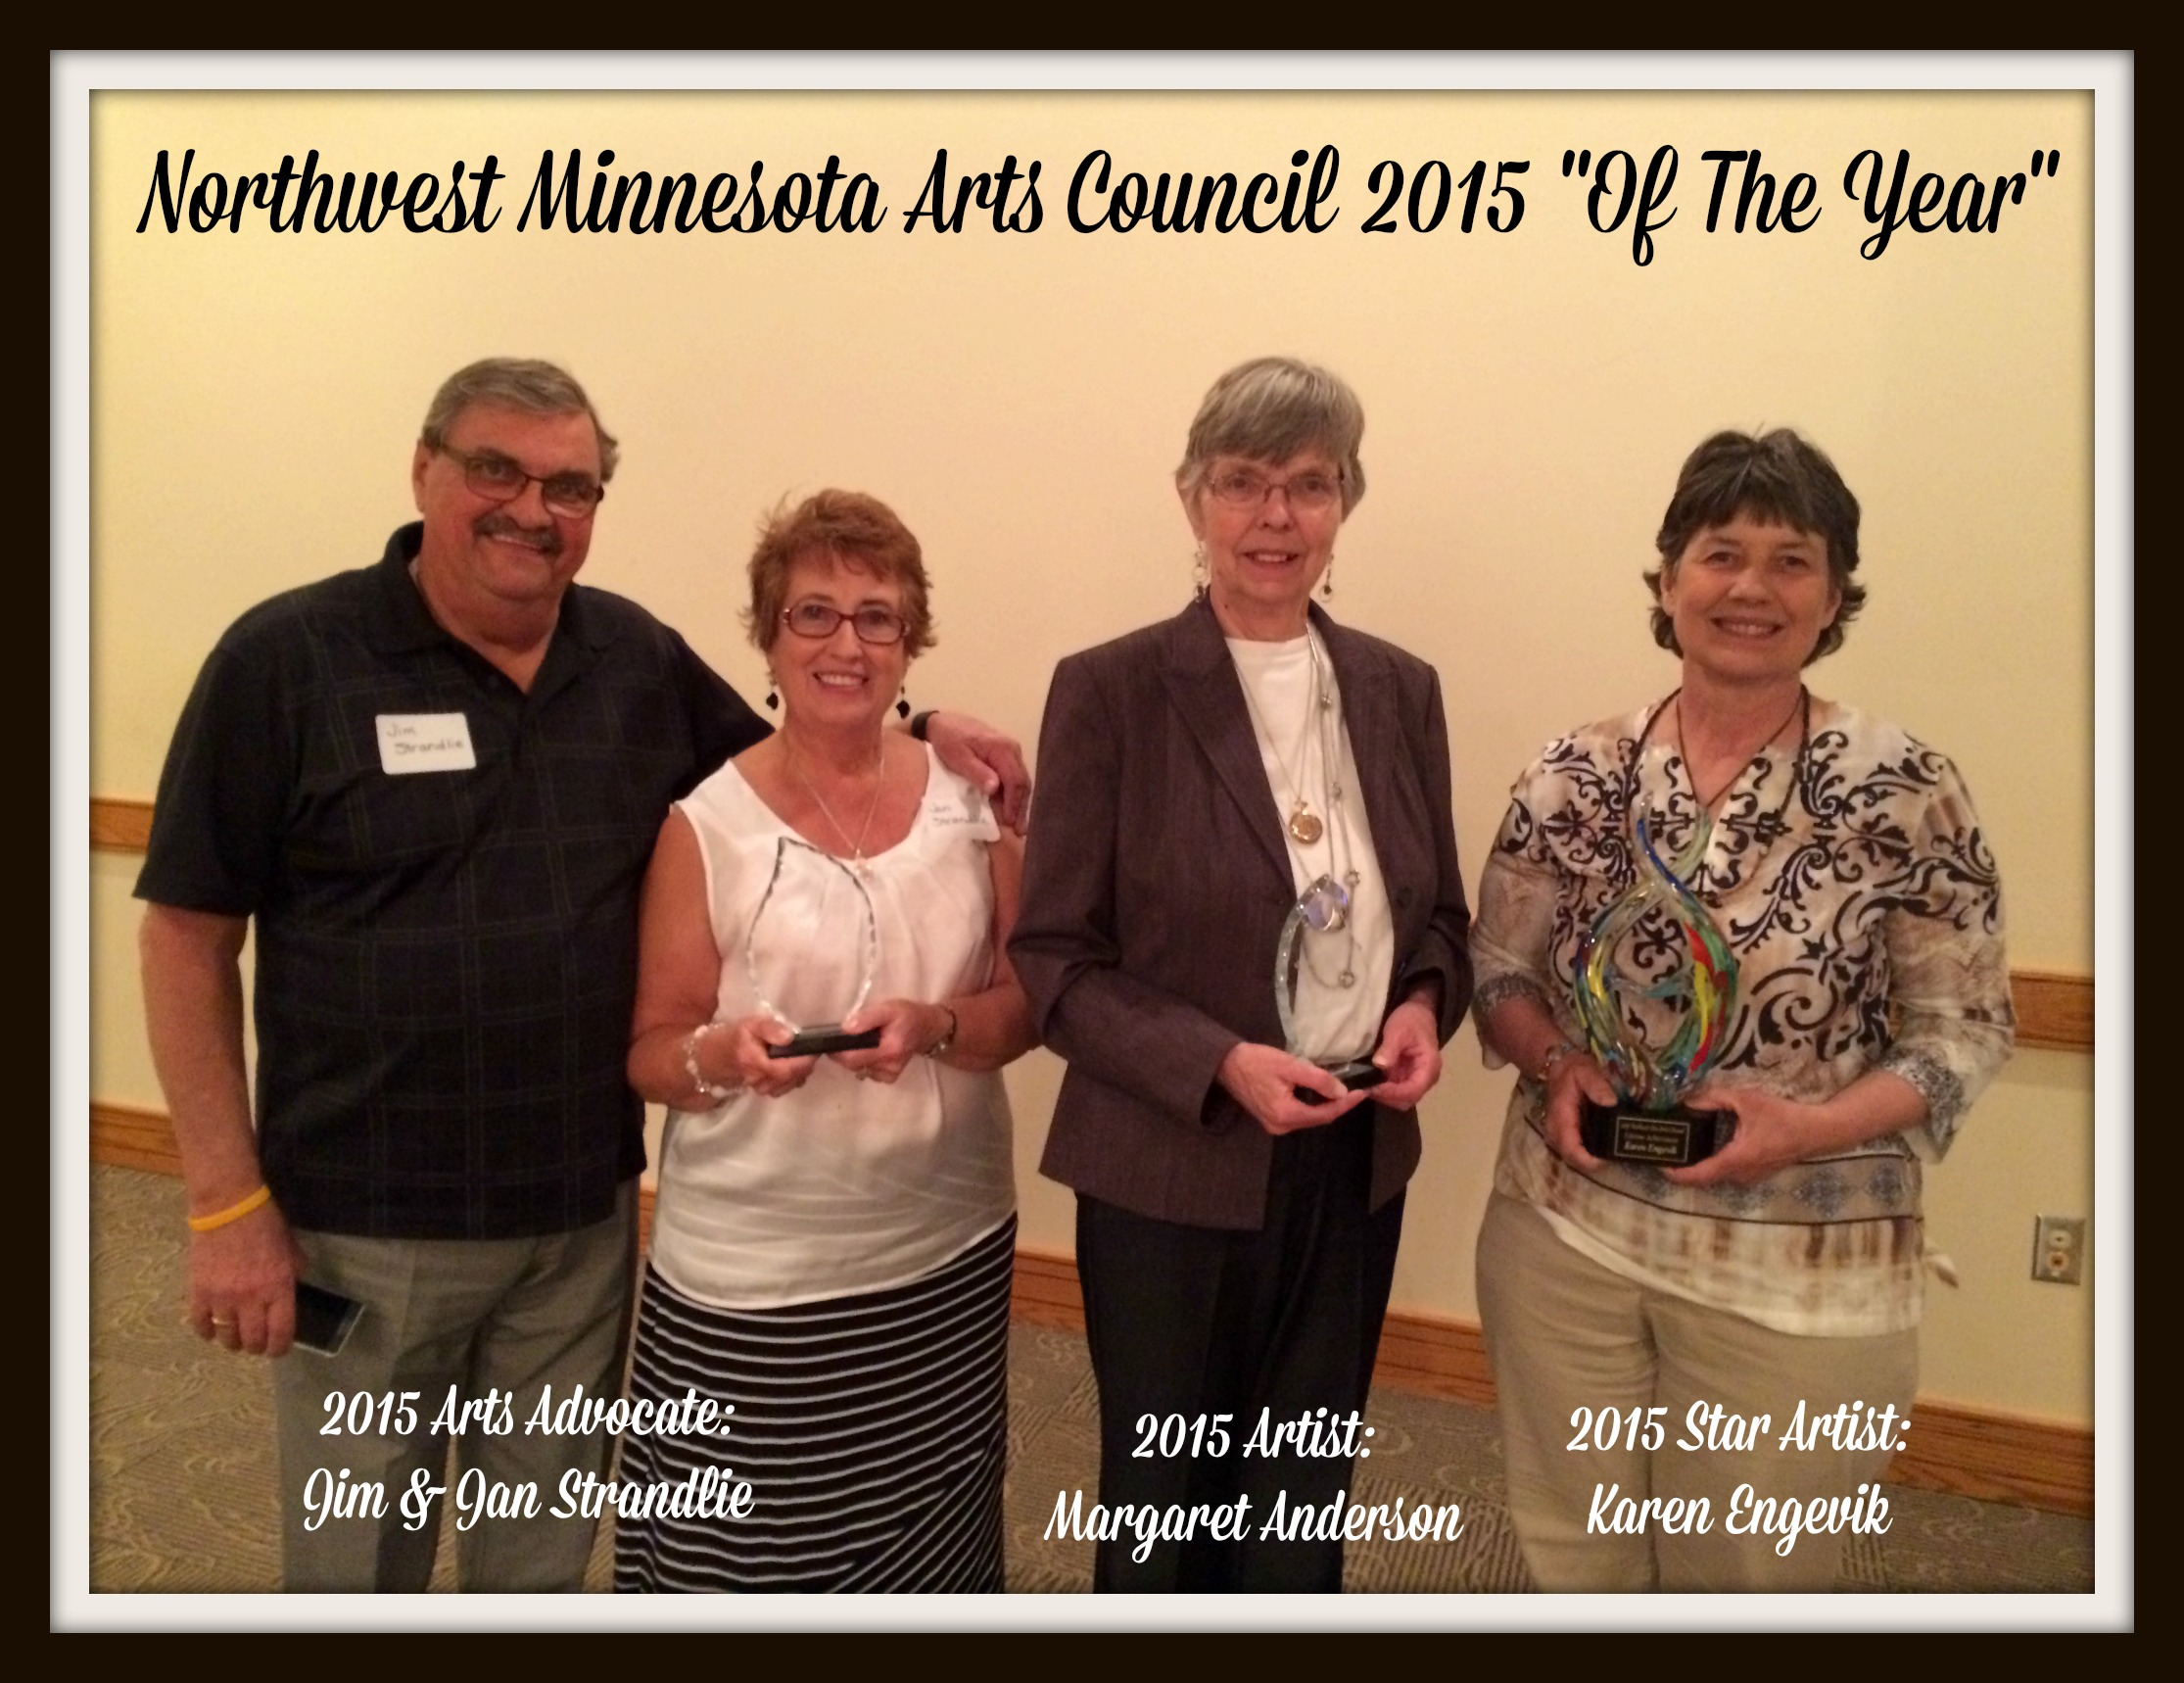 Update from the Northwest Minnesota Arts Council!